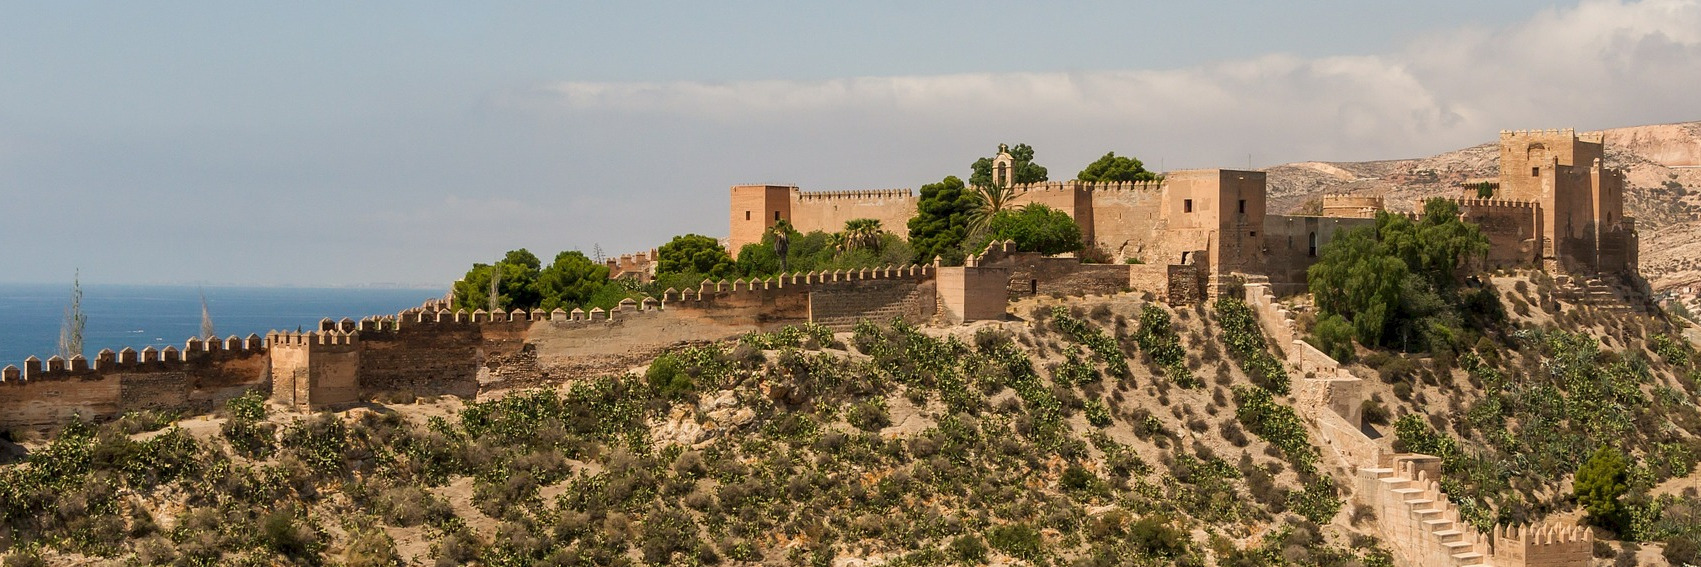 Alcazaba of Almeria, CC0, by skeeze